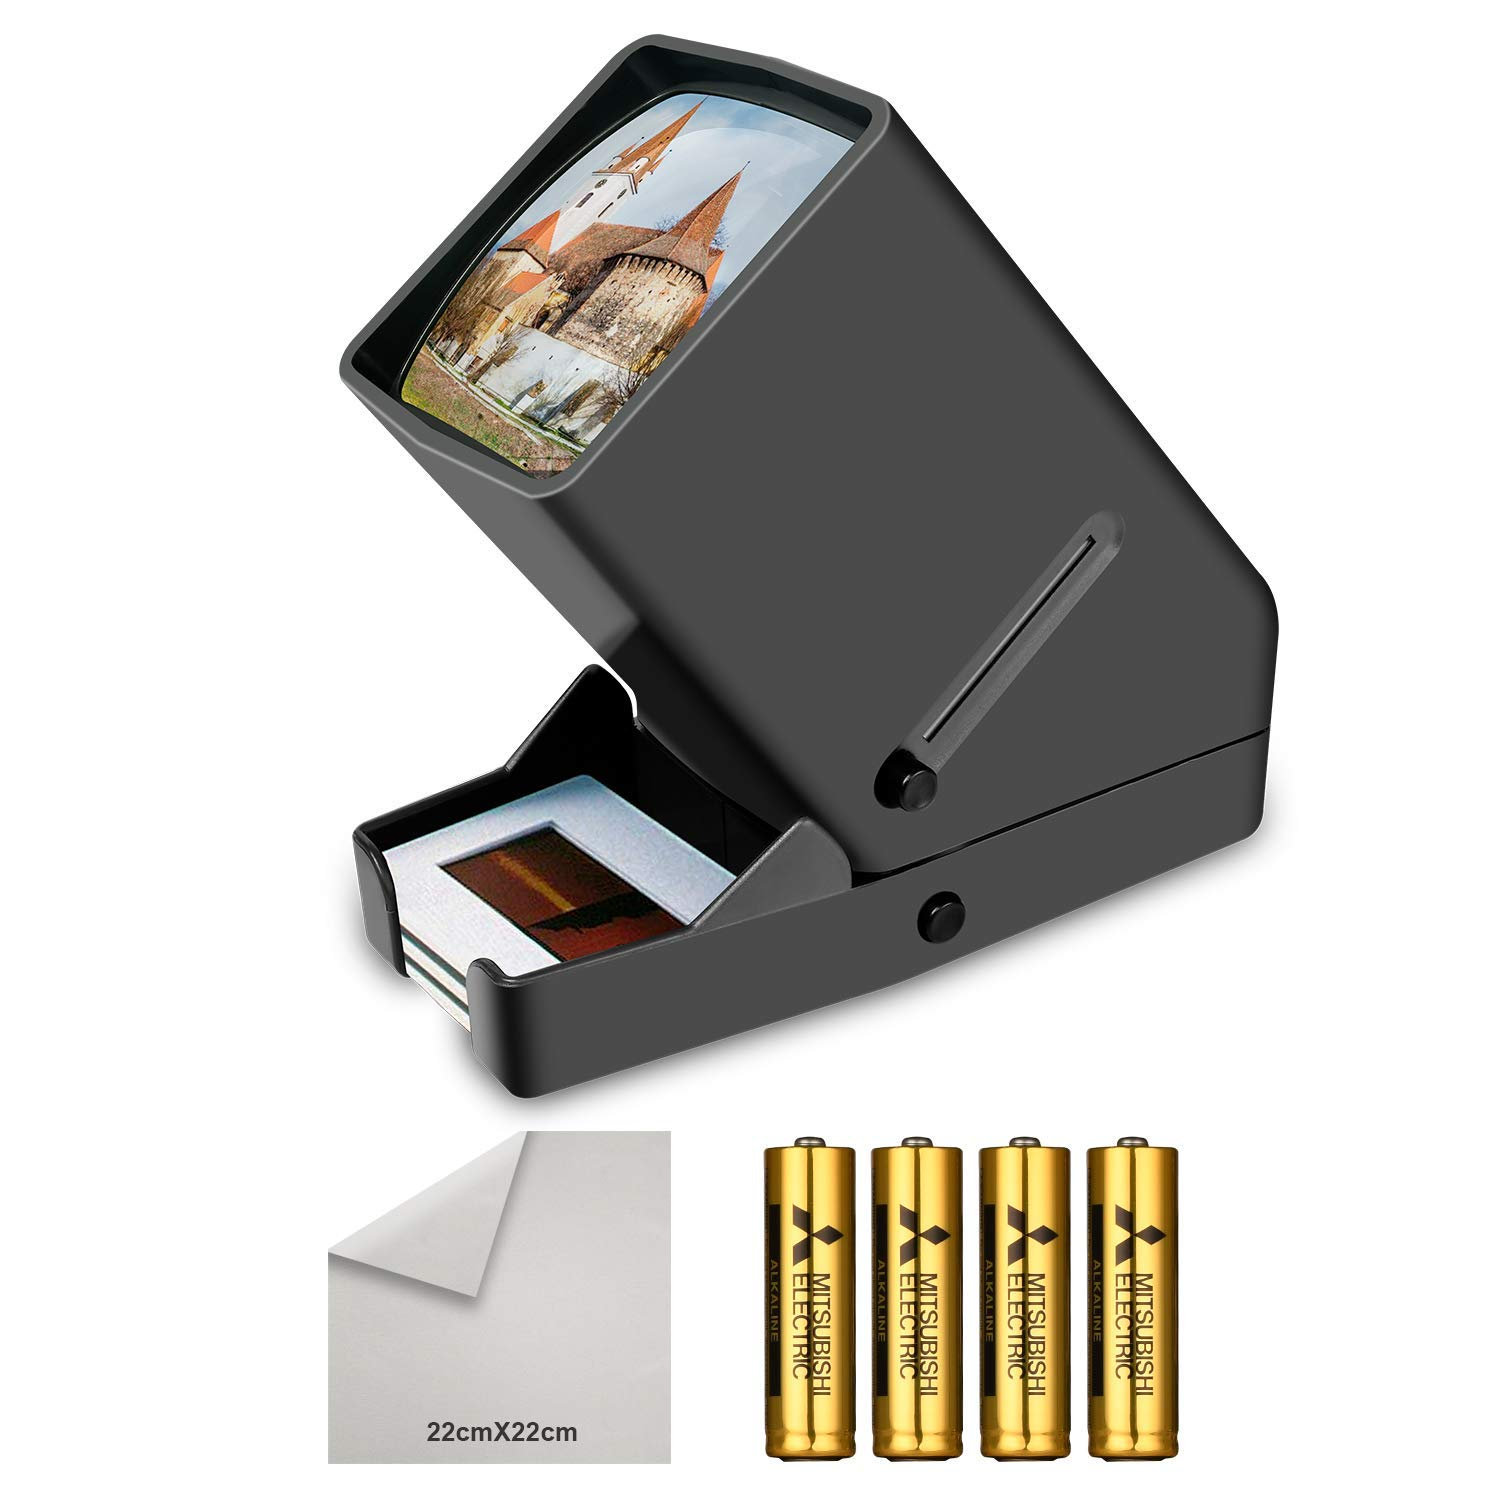 Rybozen 35mm Film and Slide Viewer, 3X Magnification and Desk Top LED Lighted Illuminated Viewing and Battery Operation-for 35mm Slides & Positive Film Negatives(4AA Batteries Included)